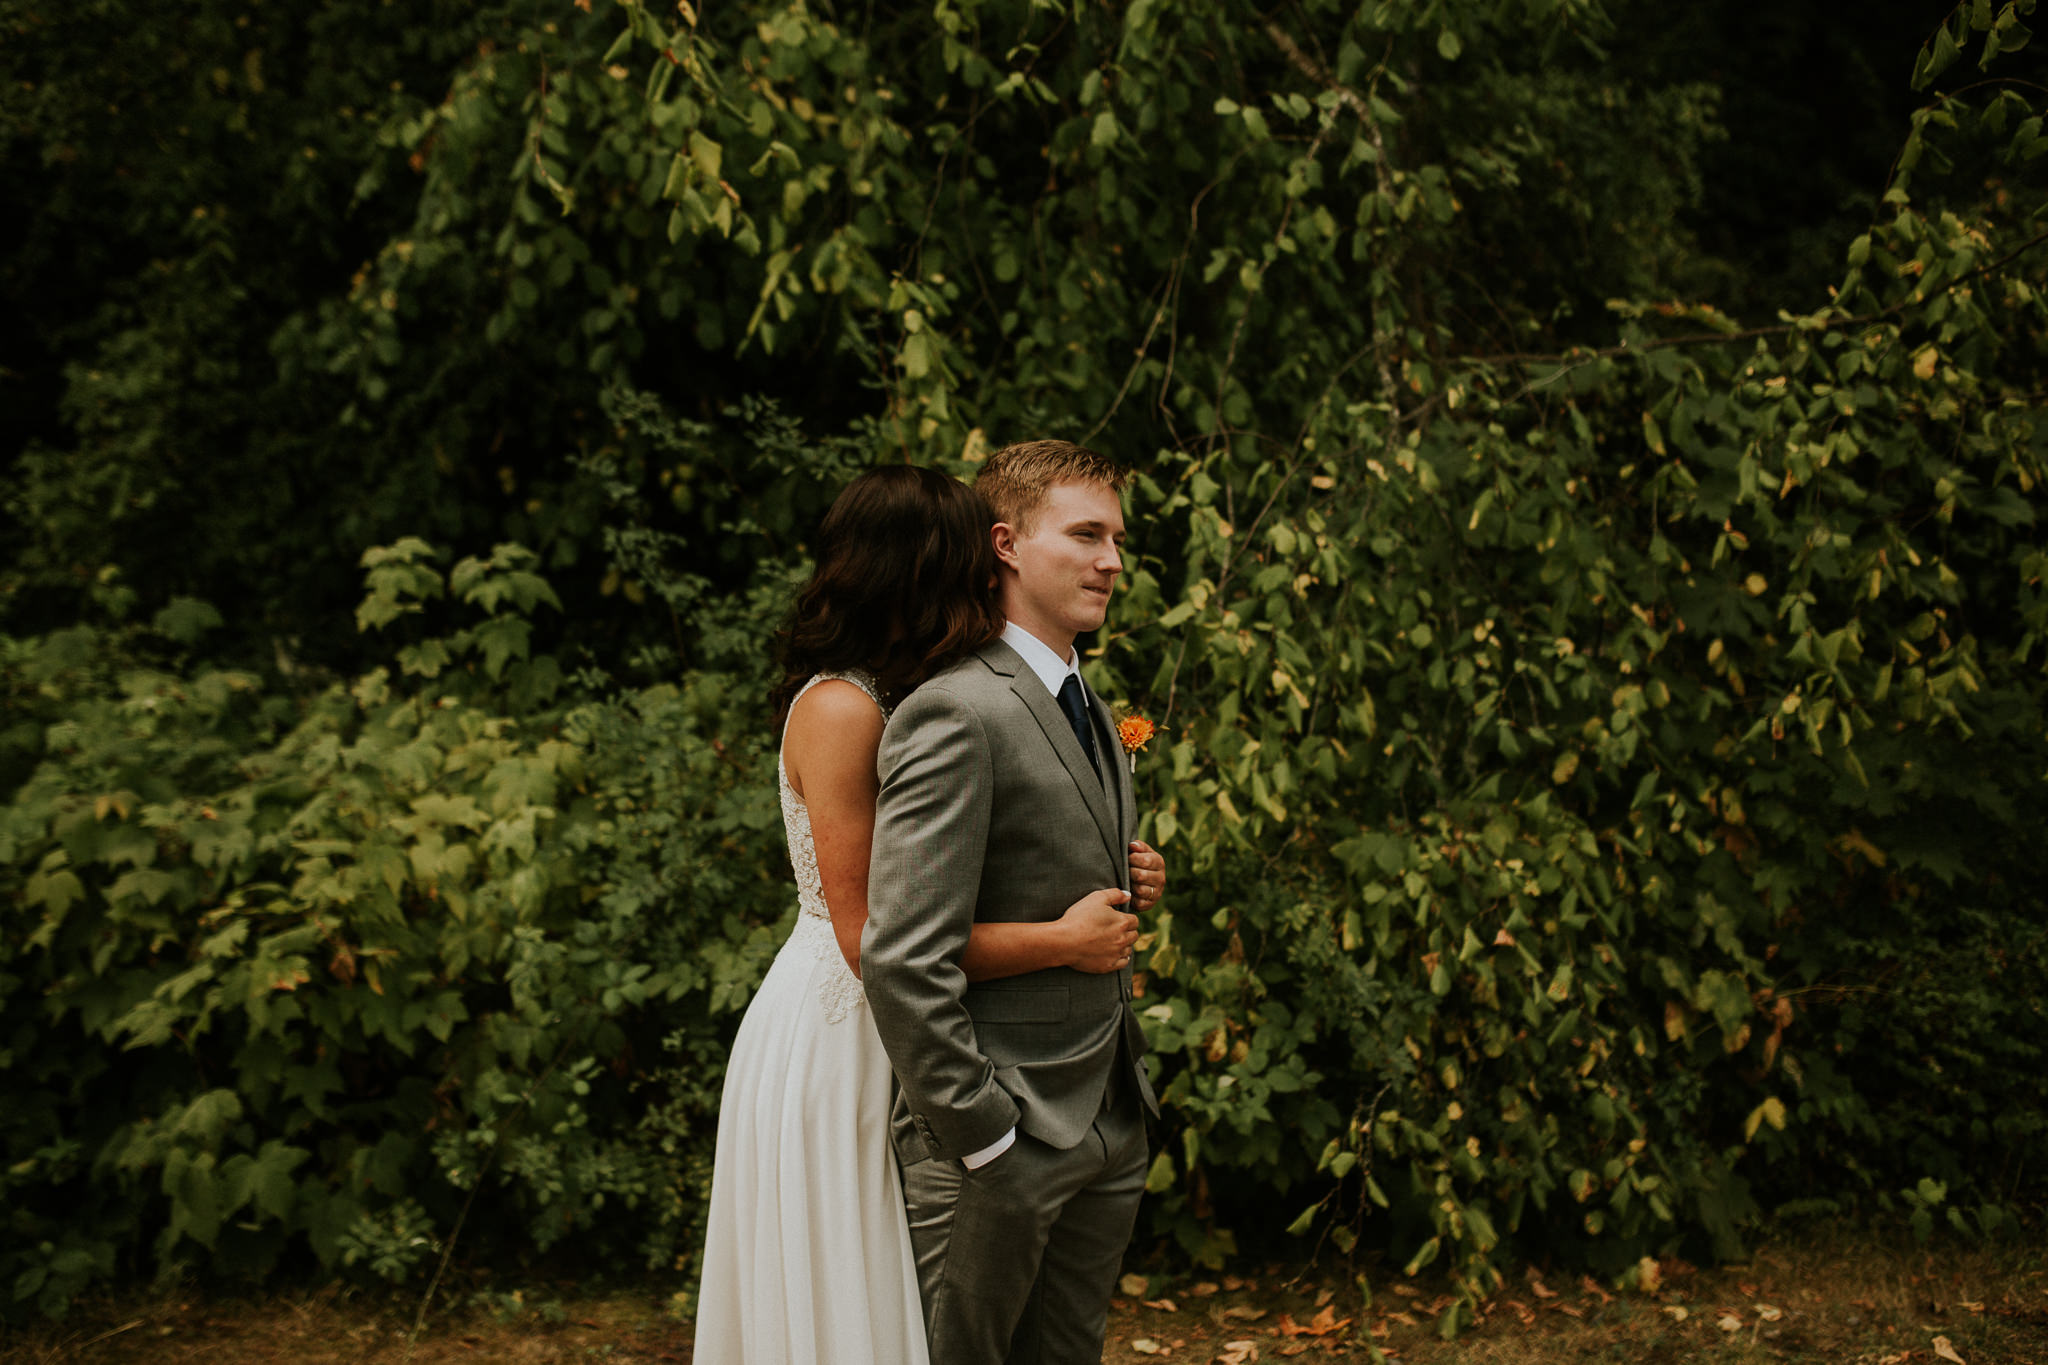 Port-Orchard-Manchester-Park-elopement-Bride-And-Groom-103.jpg